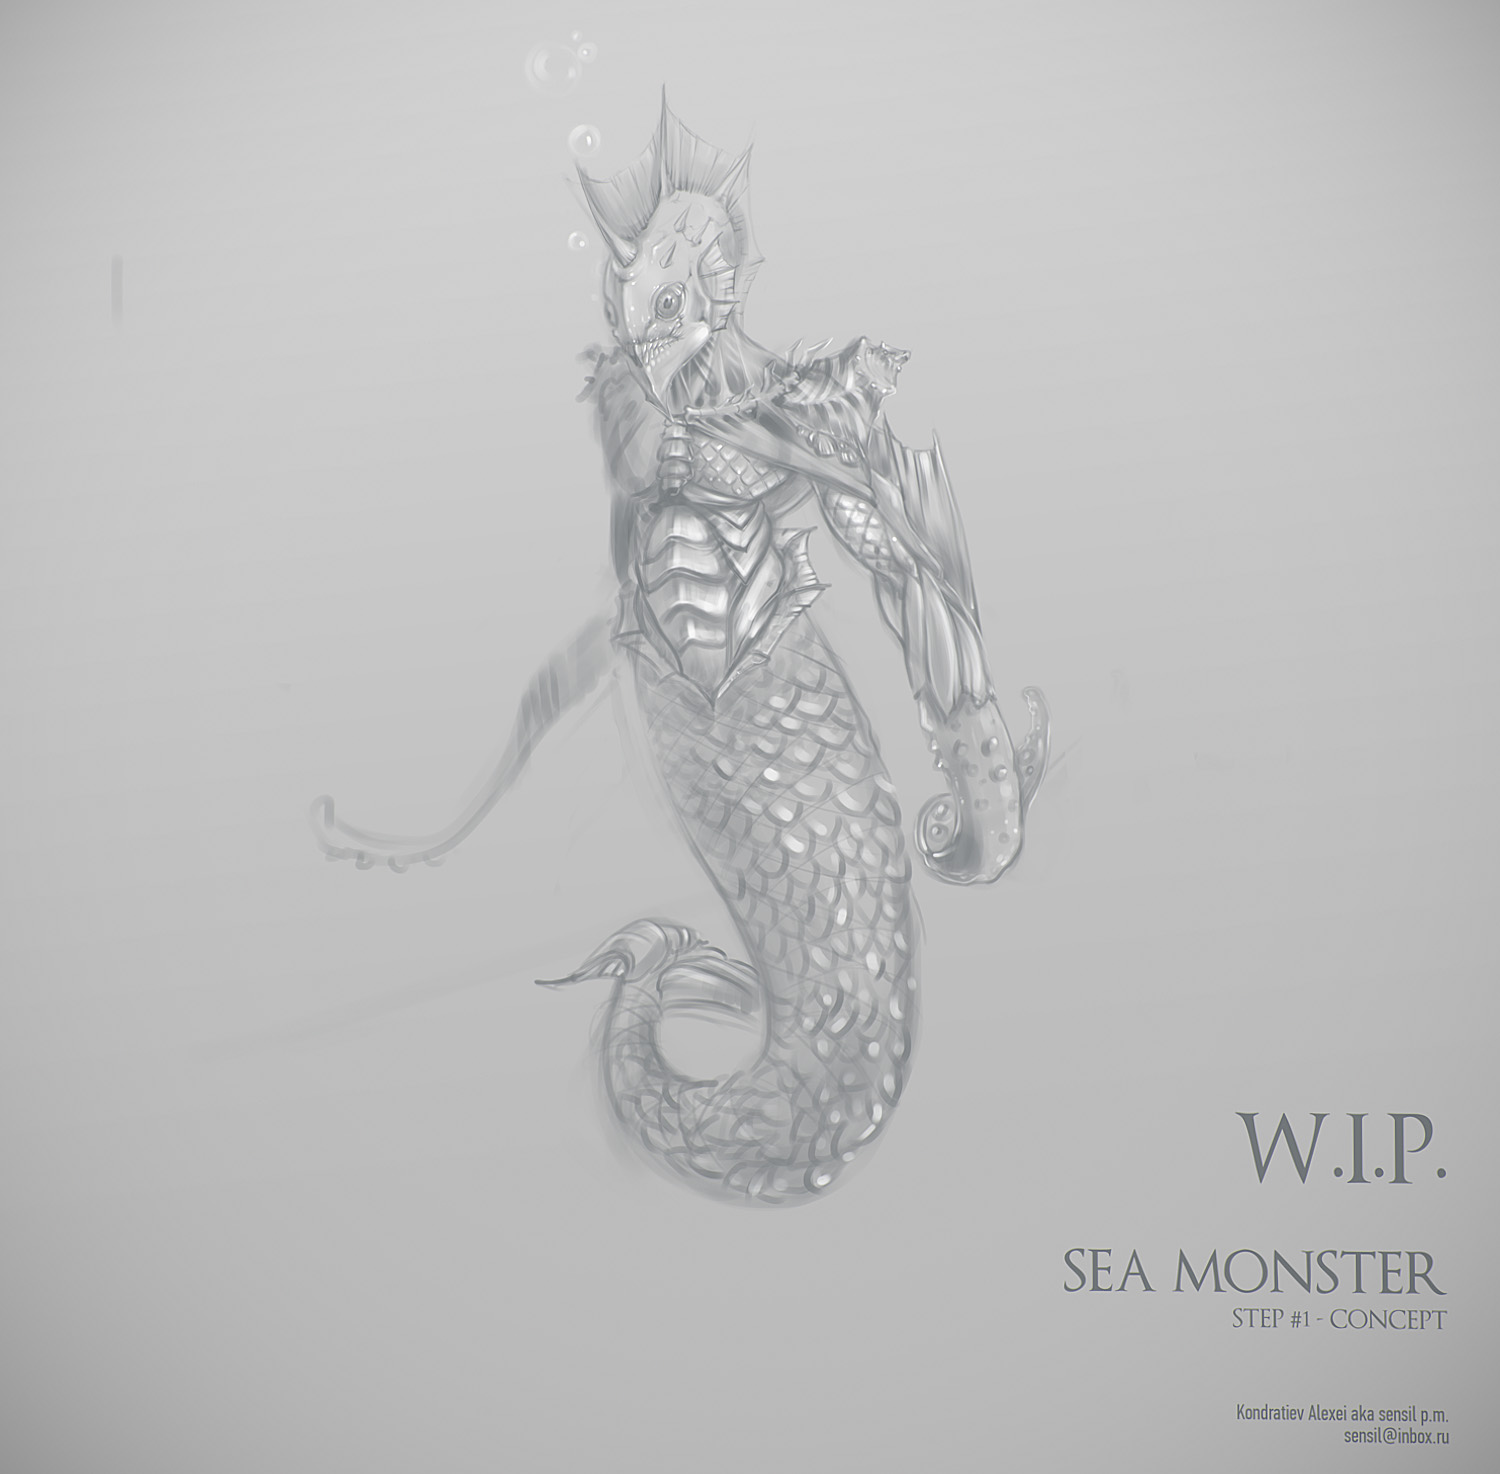 sea monster_concept01.jpg